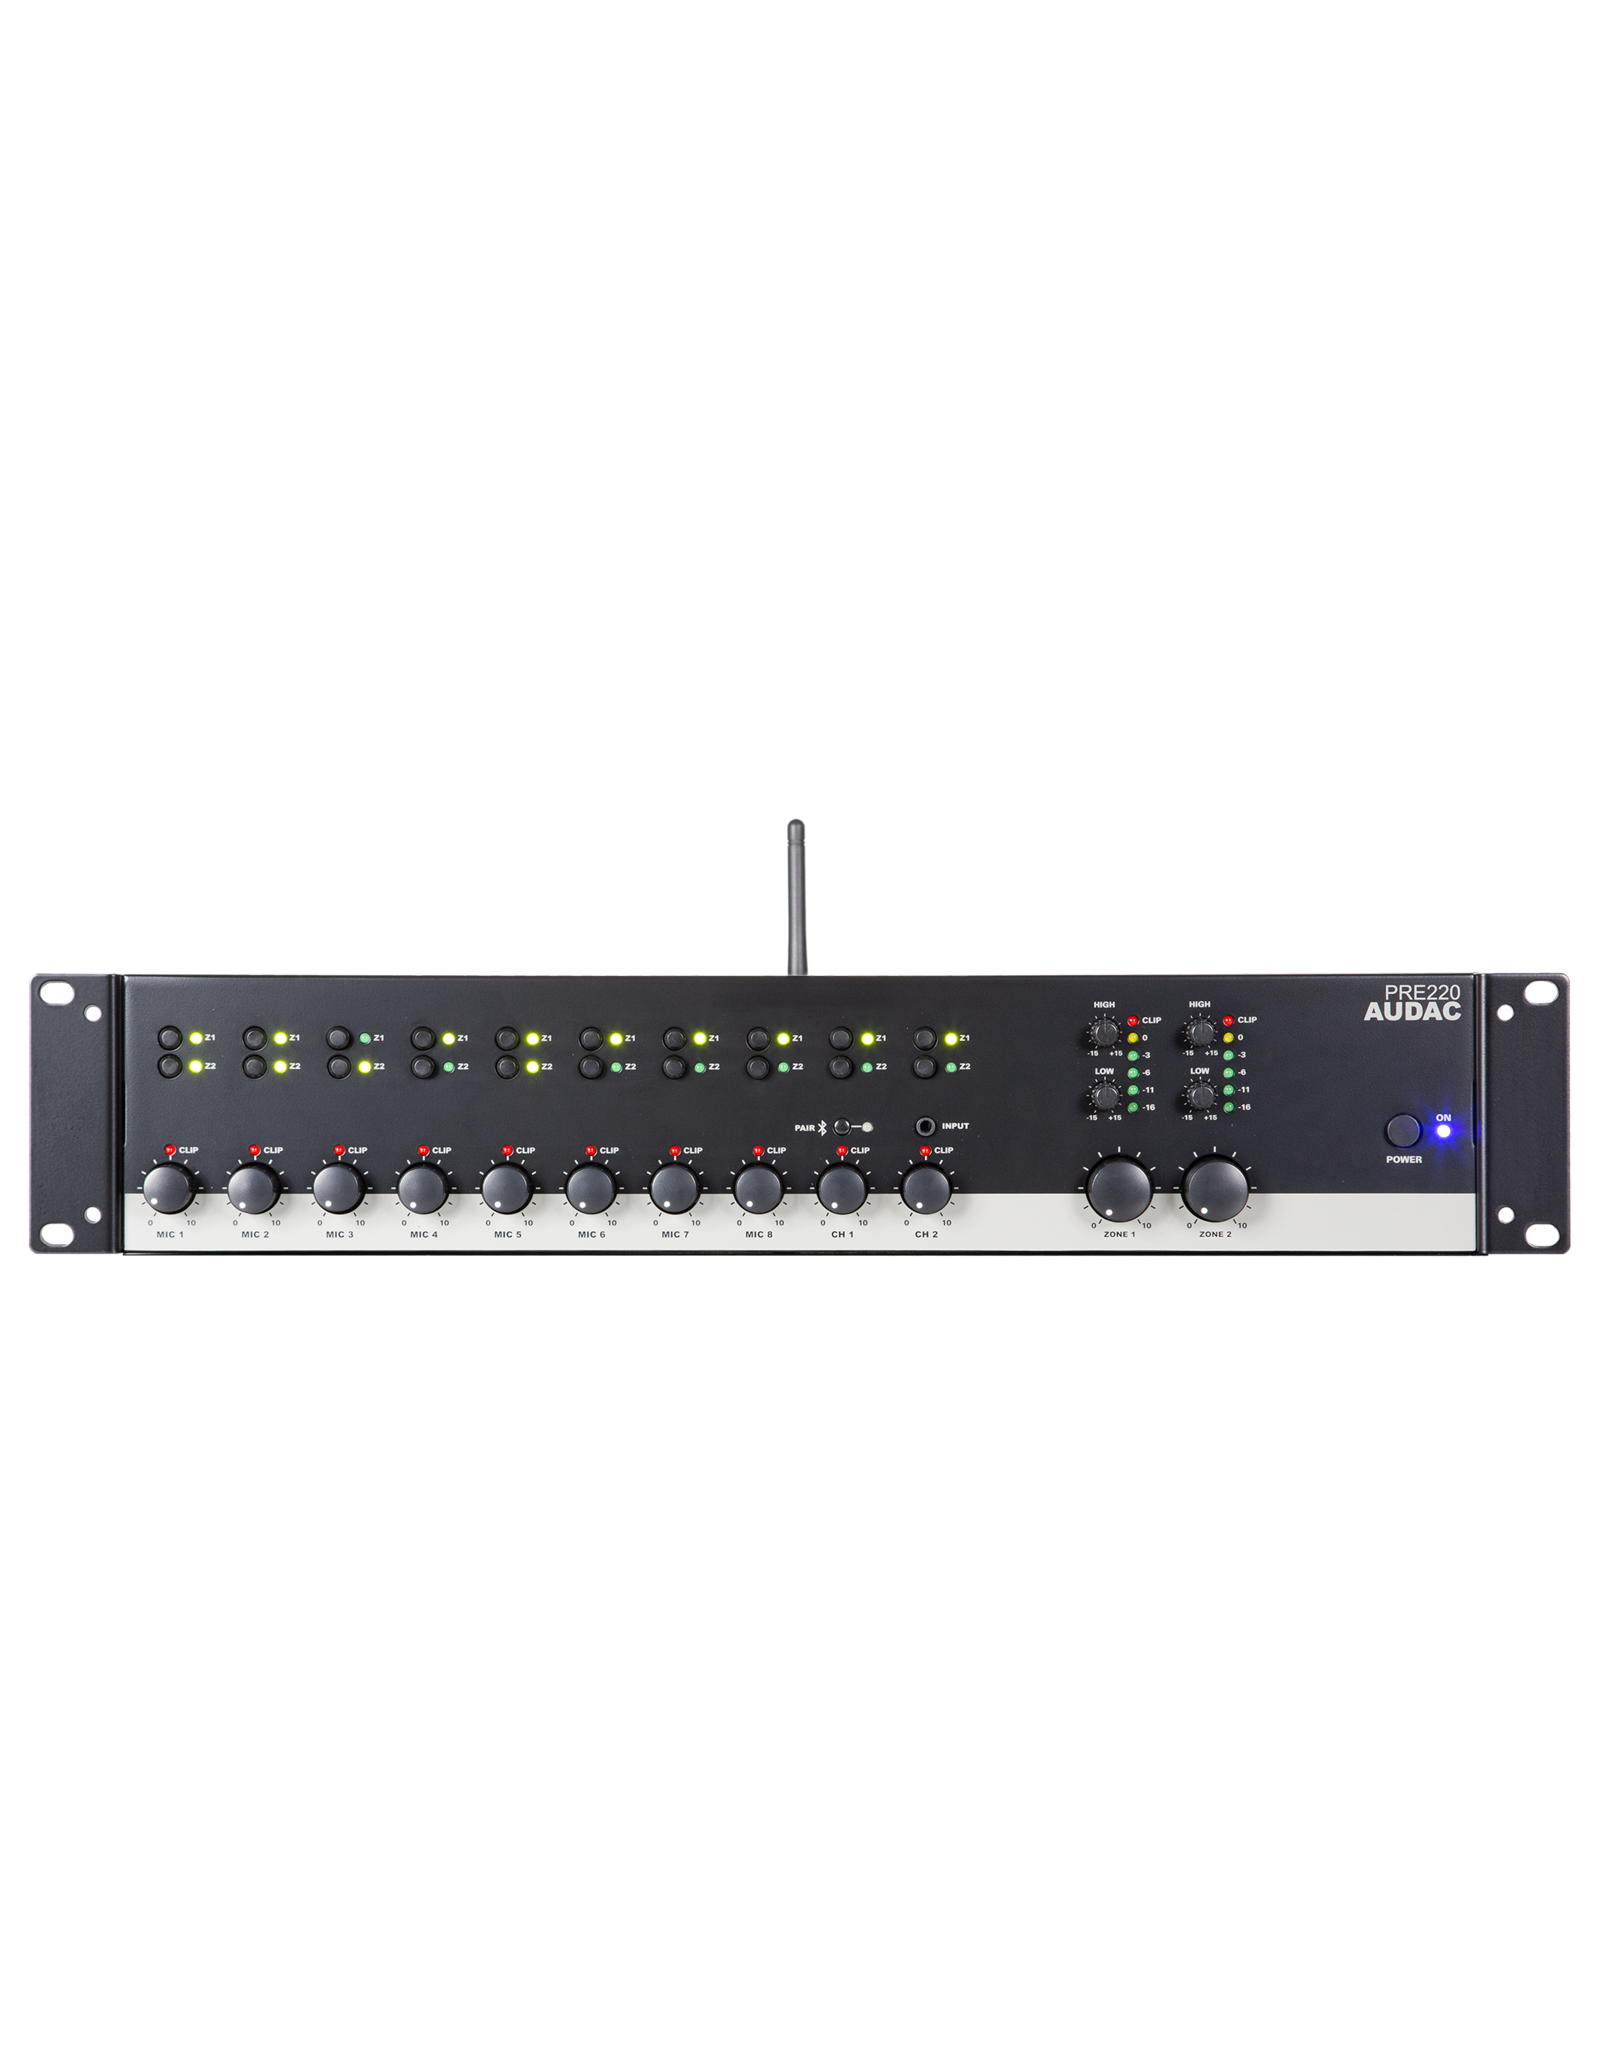 Audac Two zone - 10 Channel stereo pre-amplifier